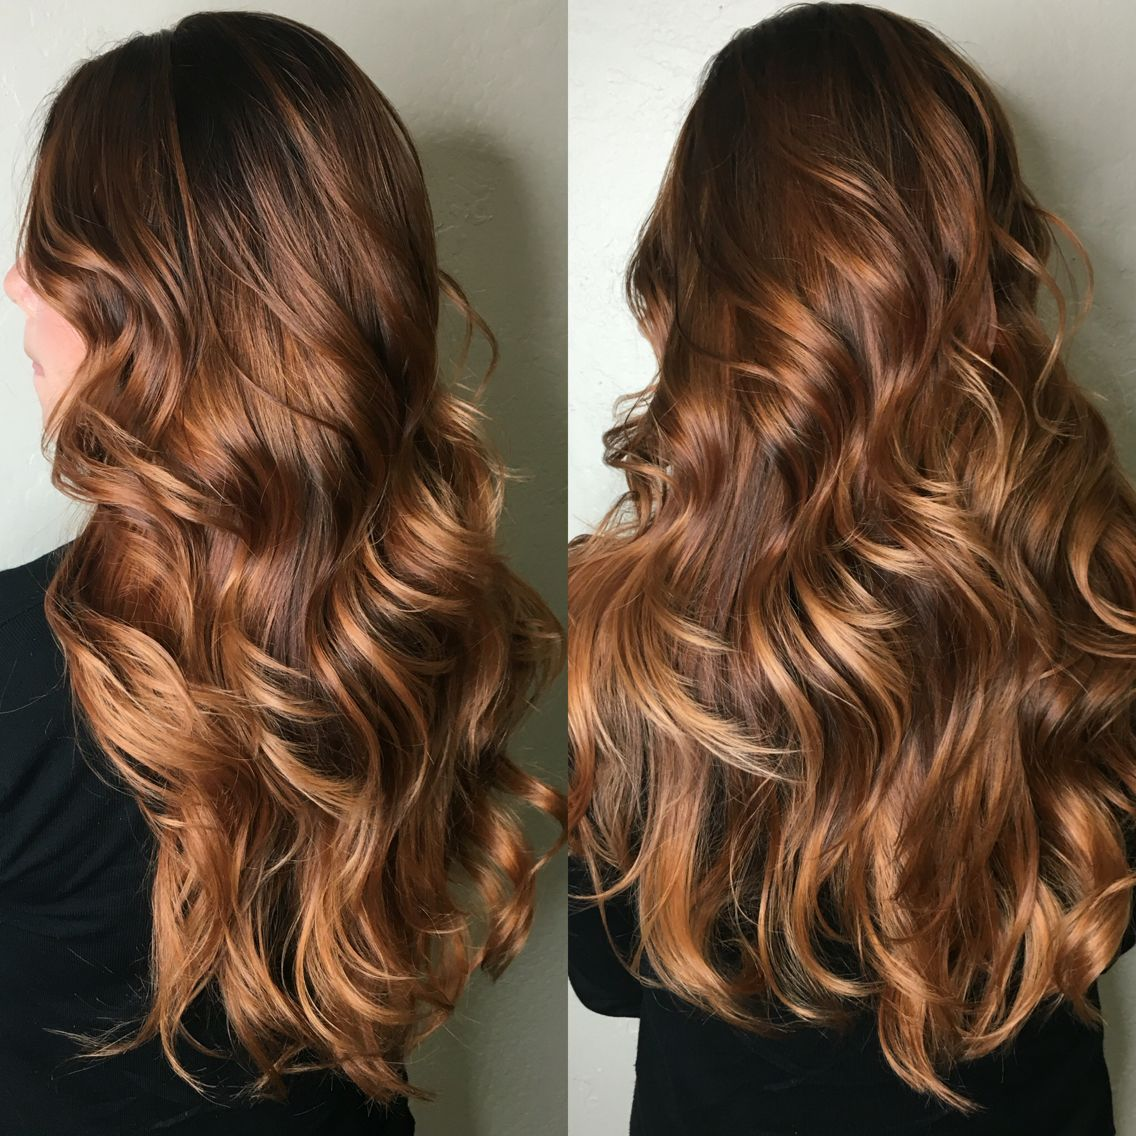 Brown Light hair with copper highlights